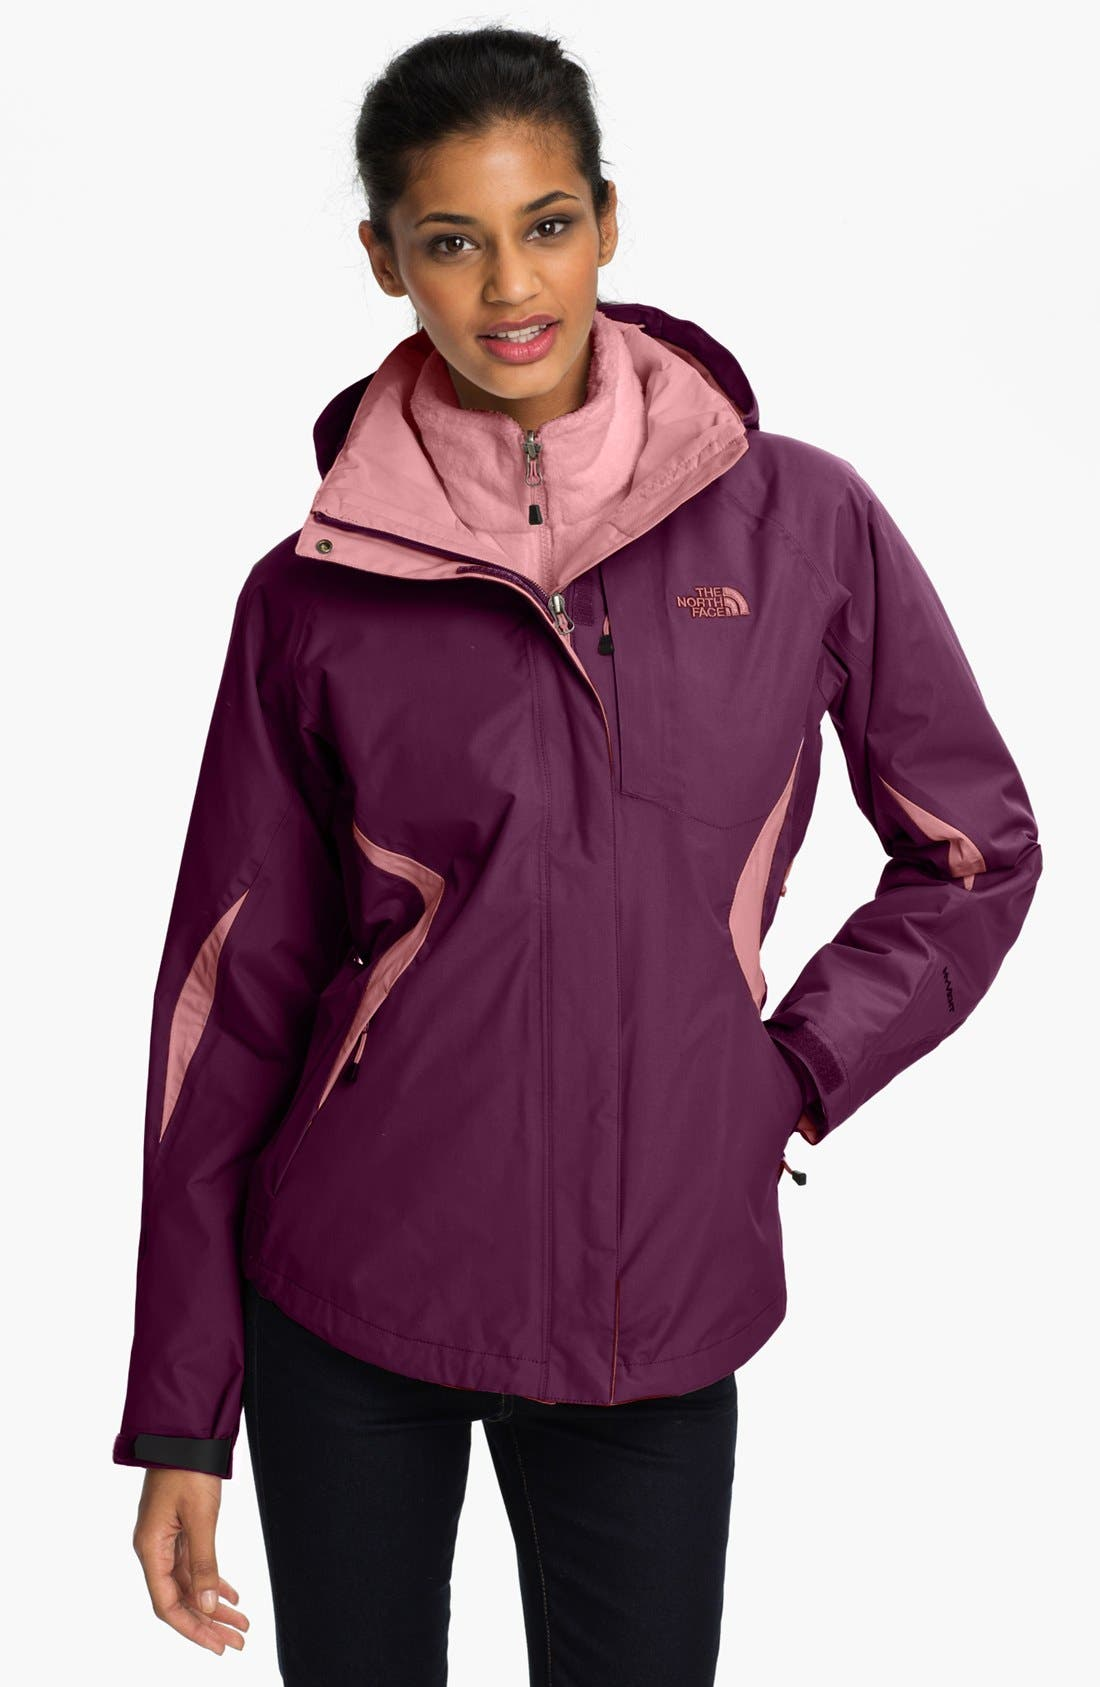 Alternate Image 1 Selected - The North Face 'Boundary' Tri-Climate Jacket